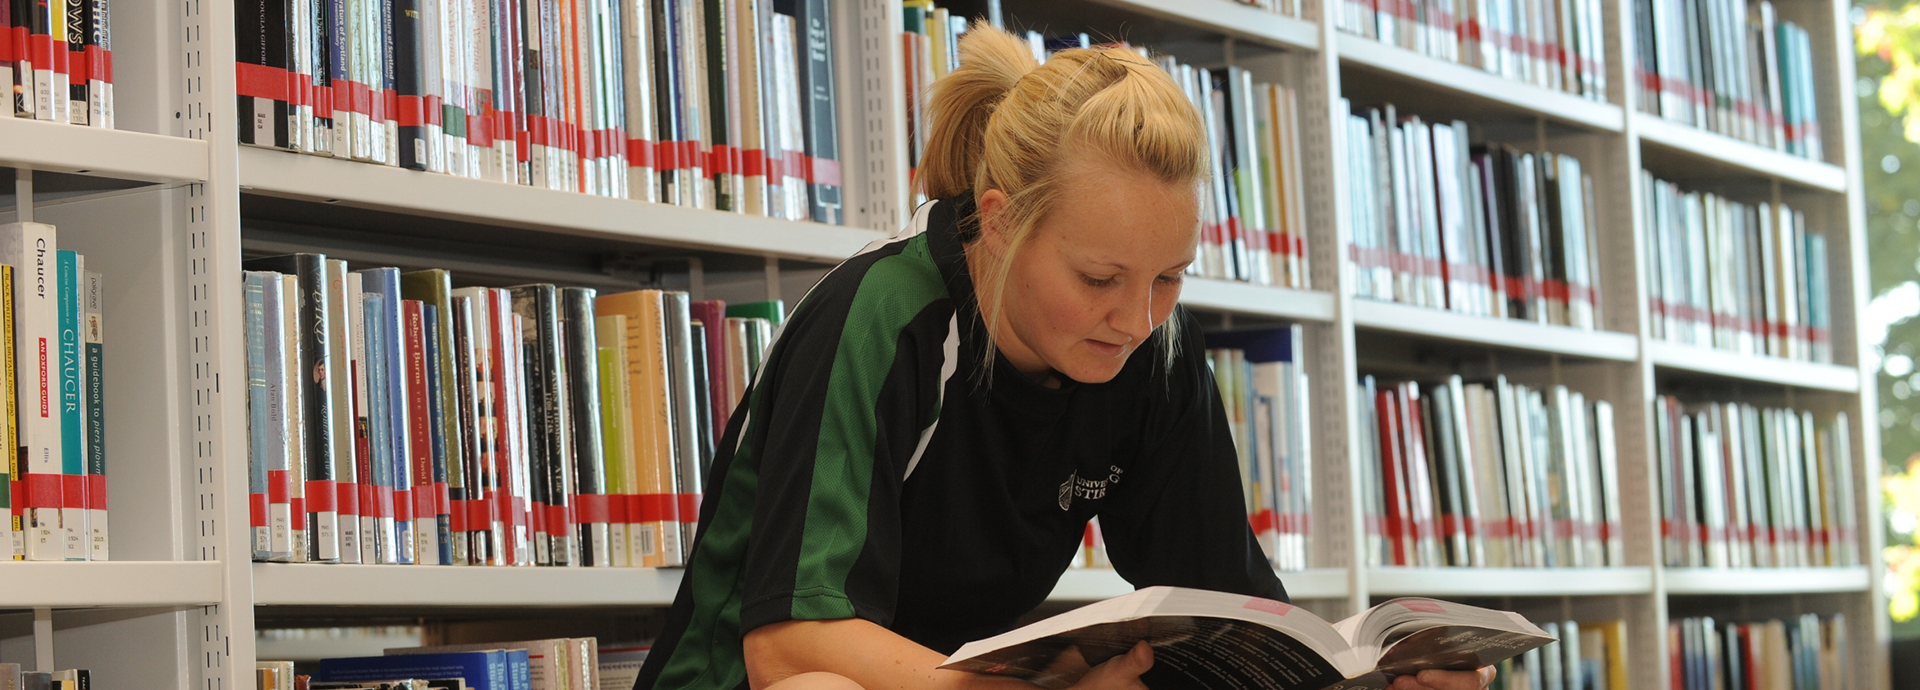 Sport student reading in library